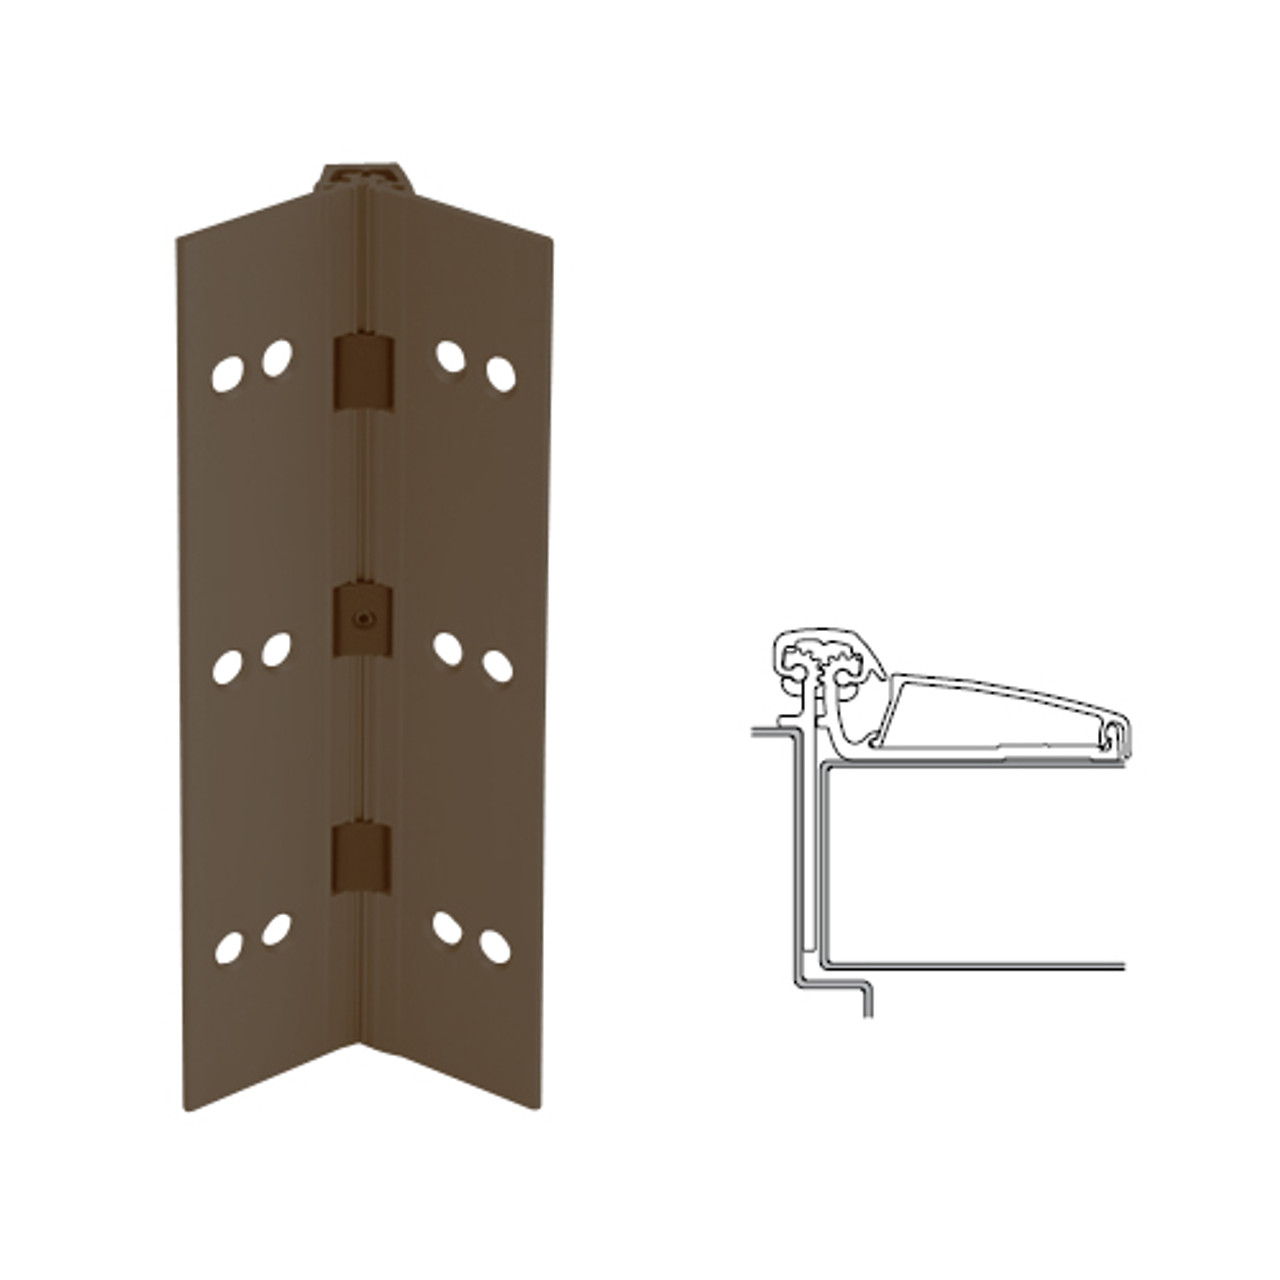 046XY-313AN-95-SECHM IVES Adjustable Half Surface Continuous Geared Hinges with Security Screws - Hex Pin Drive in Dark Bronze Anodized